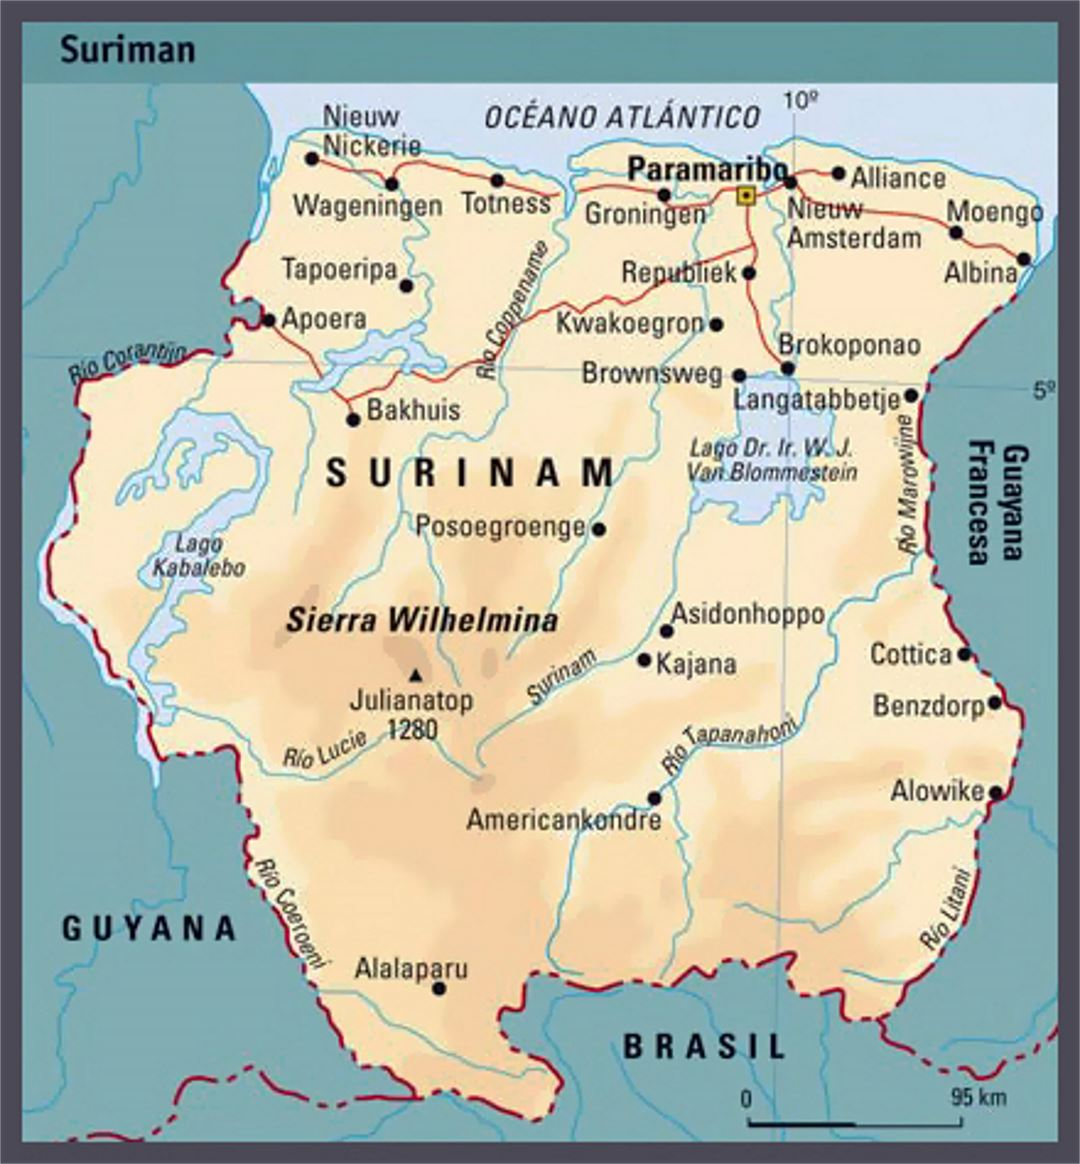 Elevation Map Of Suriname Suriname South America Mapsland - Where is suriname on the map